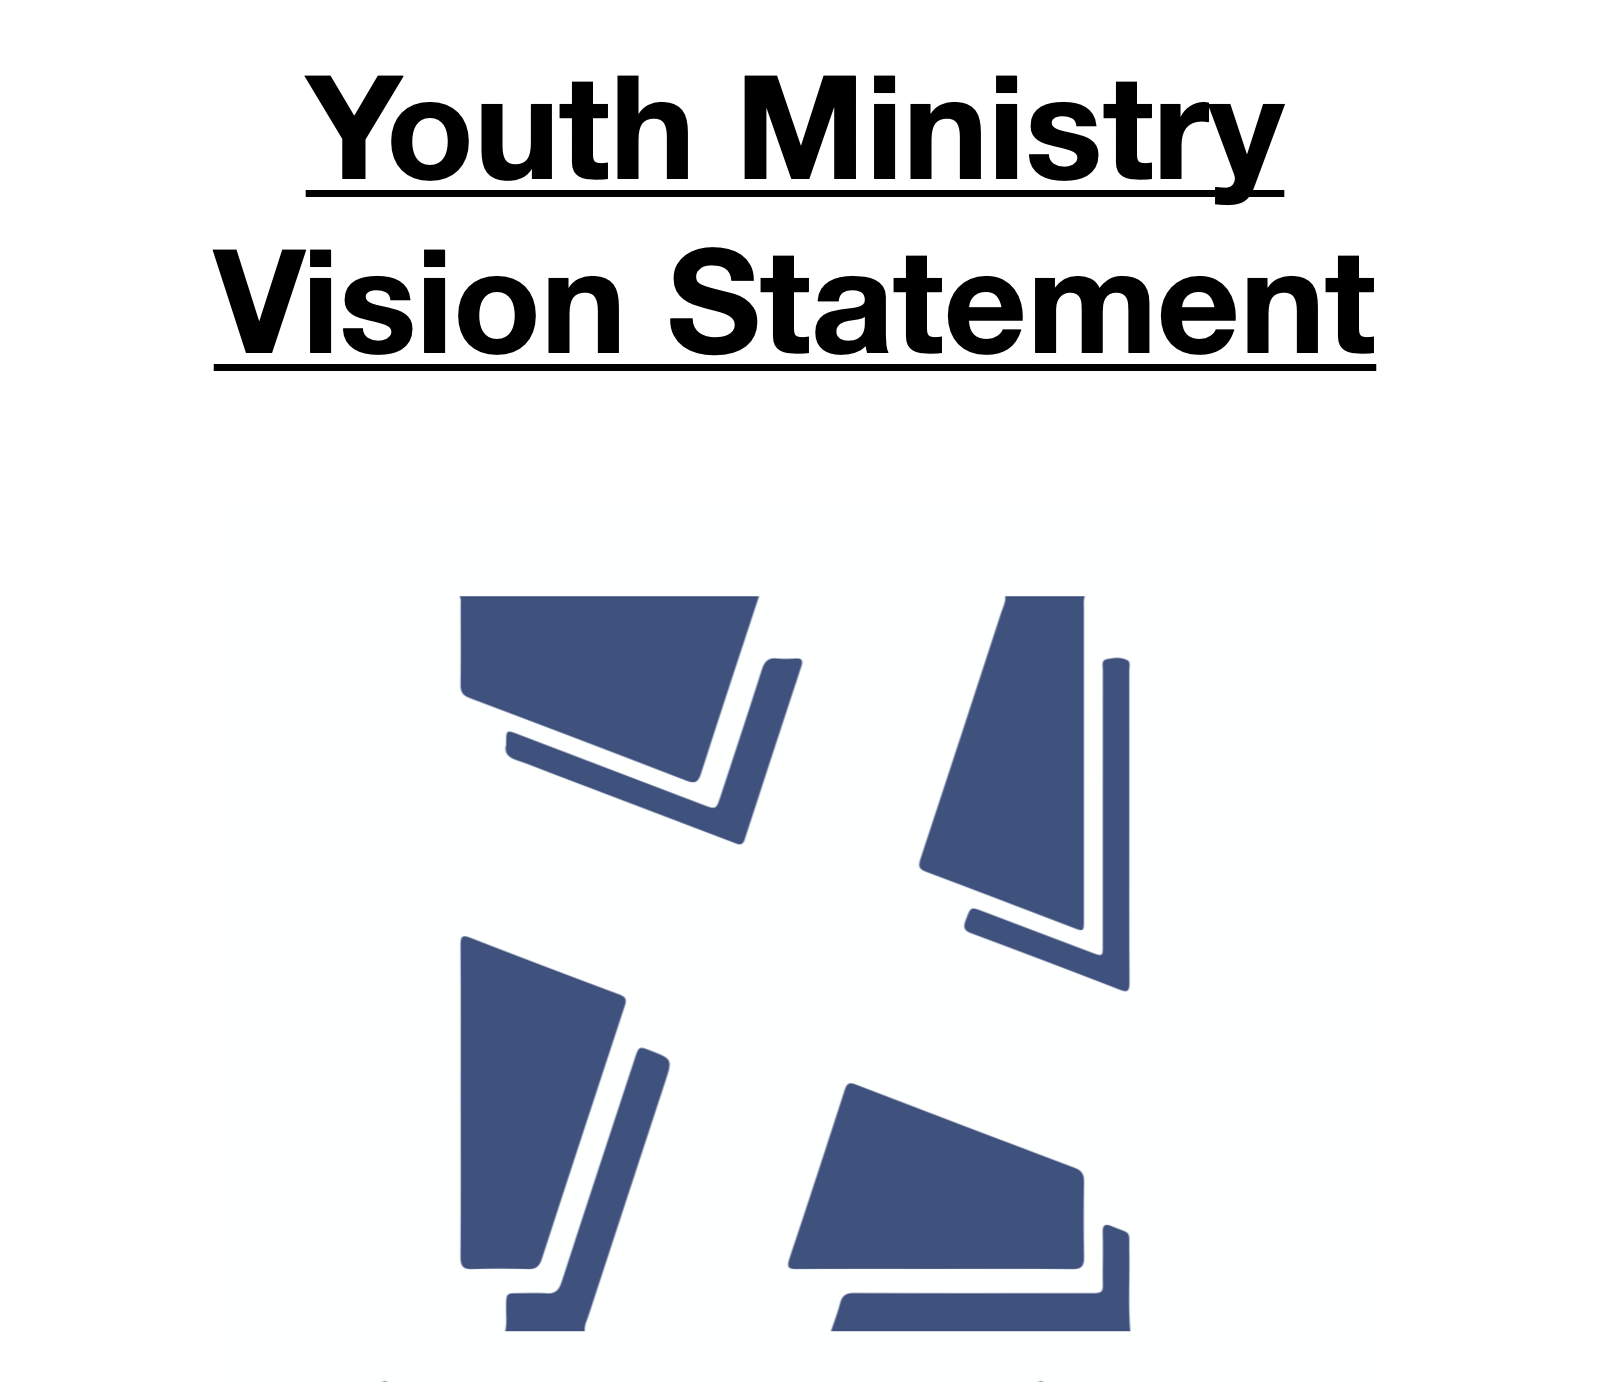 """Youth Ministry Vision Statement - """"The Landing Youth Ministry aims to partner with parents in raising up young men and women who savor, strengthen, and spread hope in Jesus Christ to the glory of God!""""If you would like to read our full vision statement, please click the image on the left."""